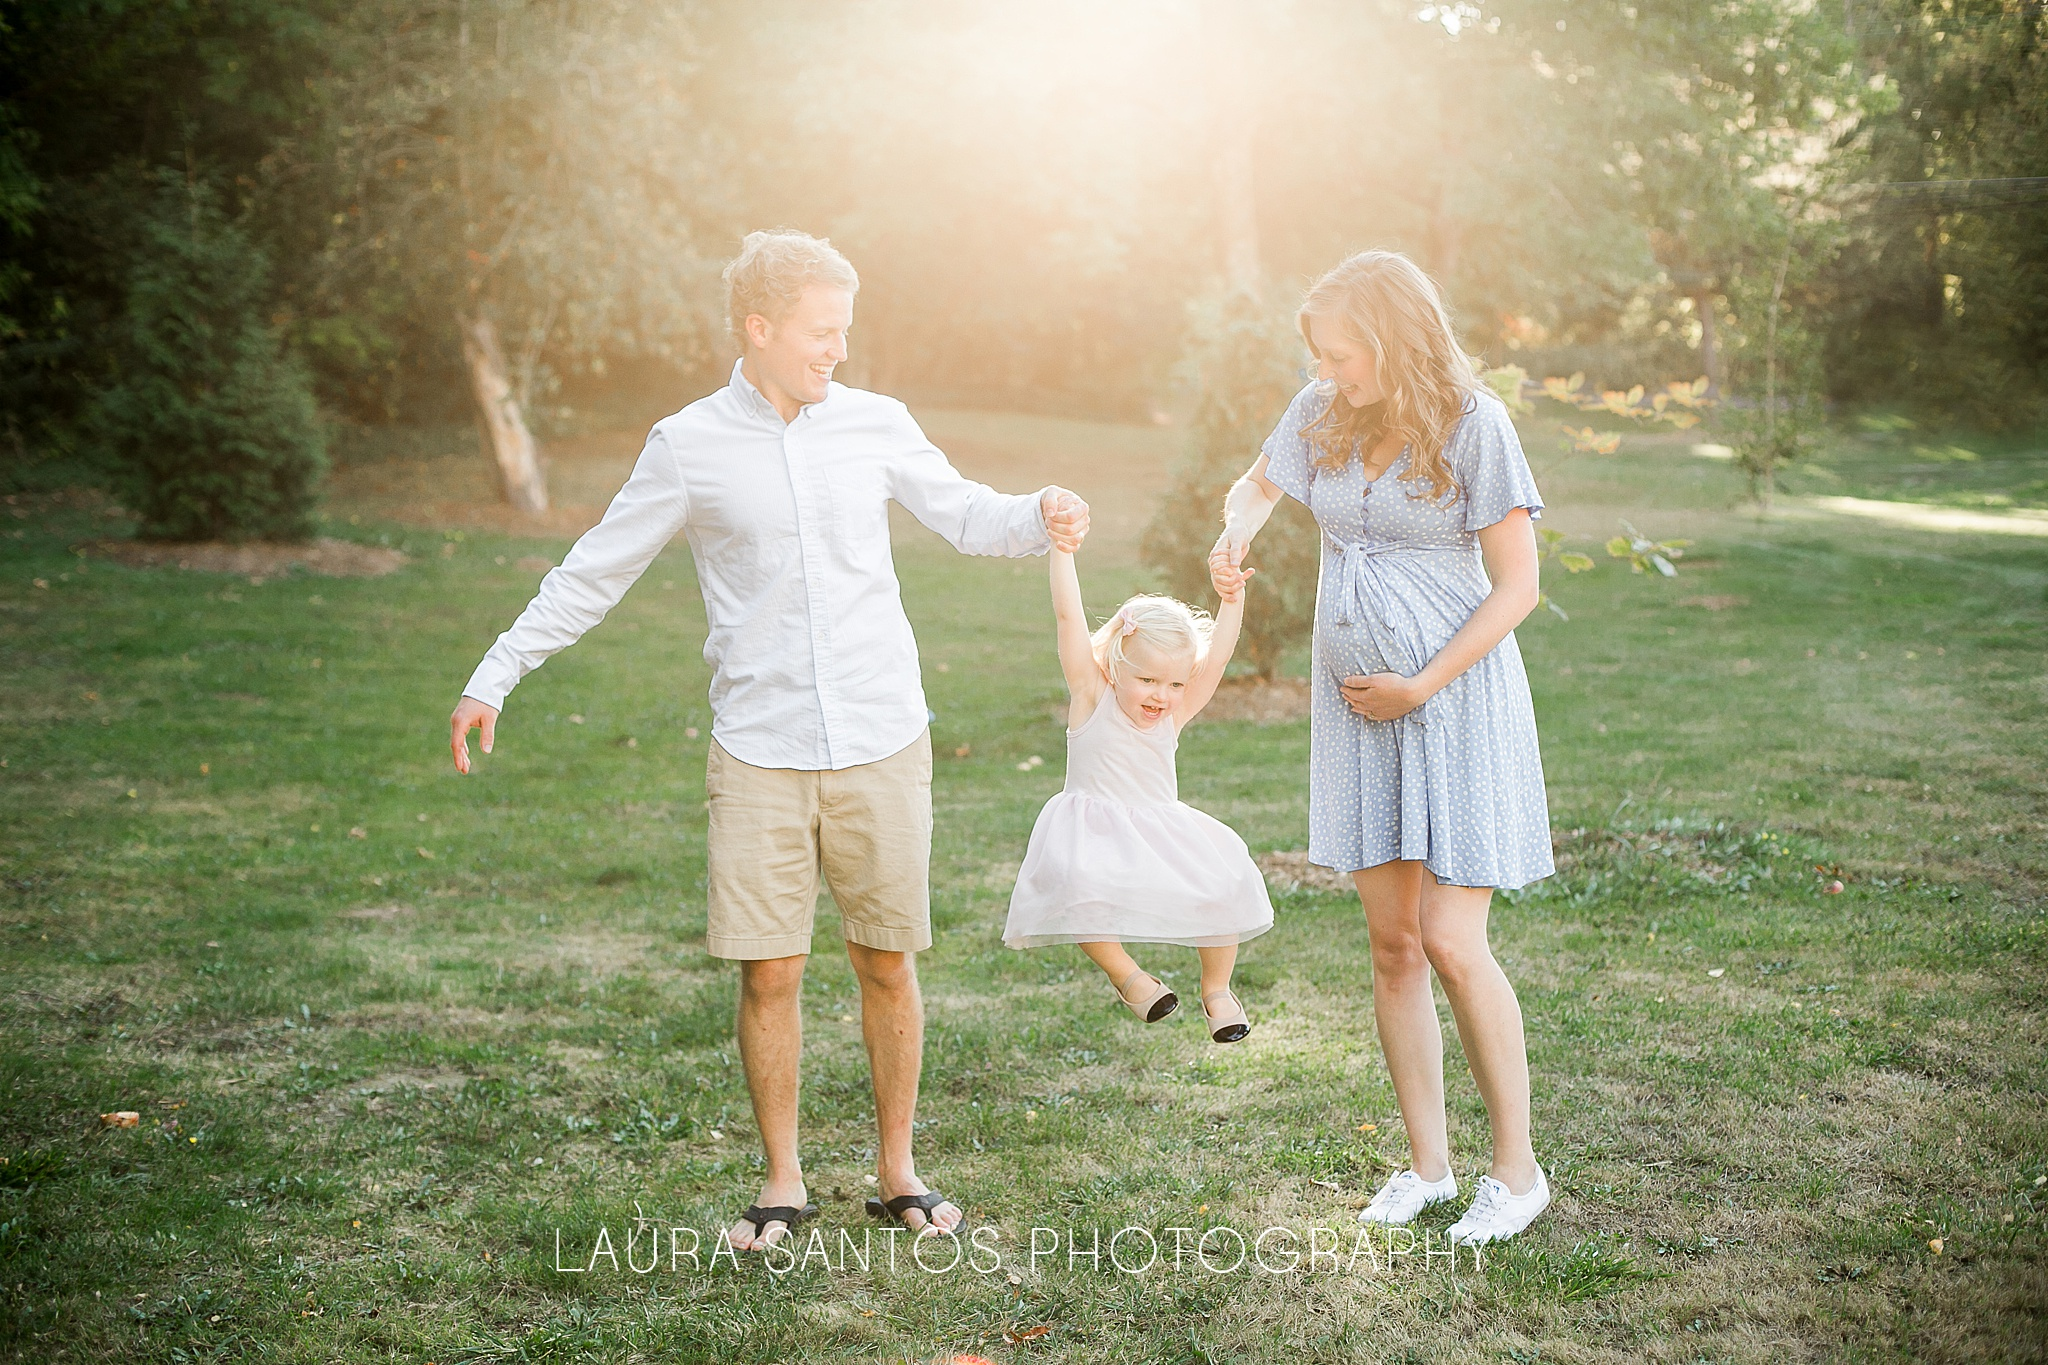 Laura Santos Photography Portland Oregon Family Photographer_0734.jpg